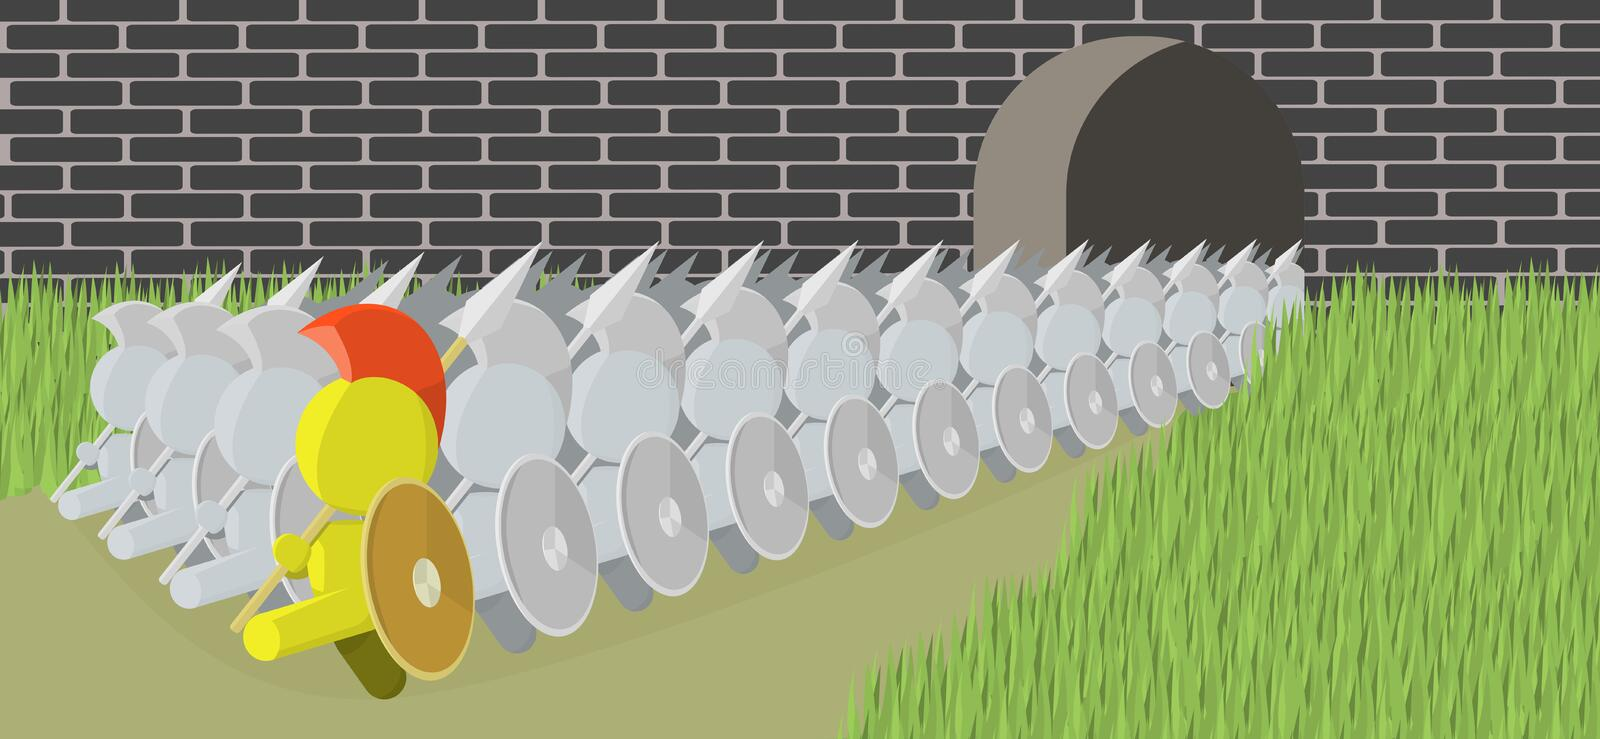 Download Spearman Marching Out Of Castle Illustration Stock Vector - Image: 20940278